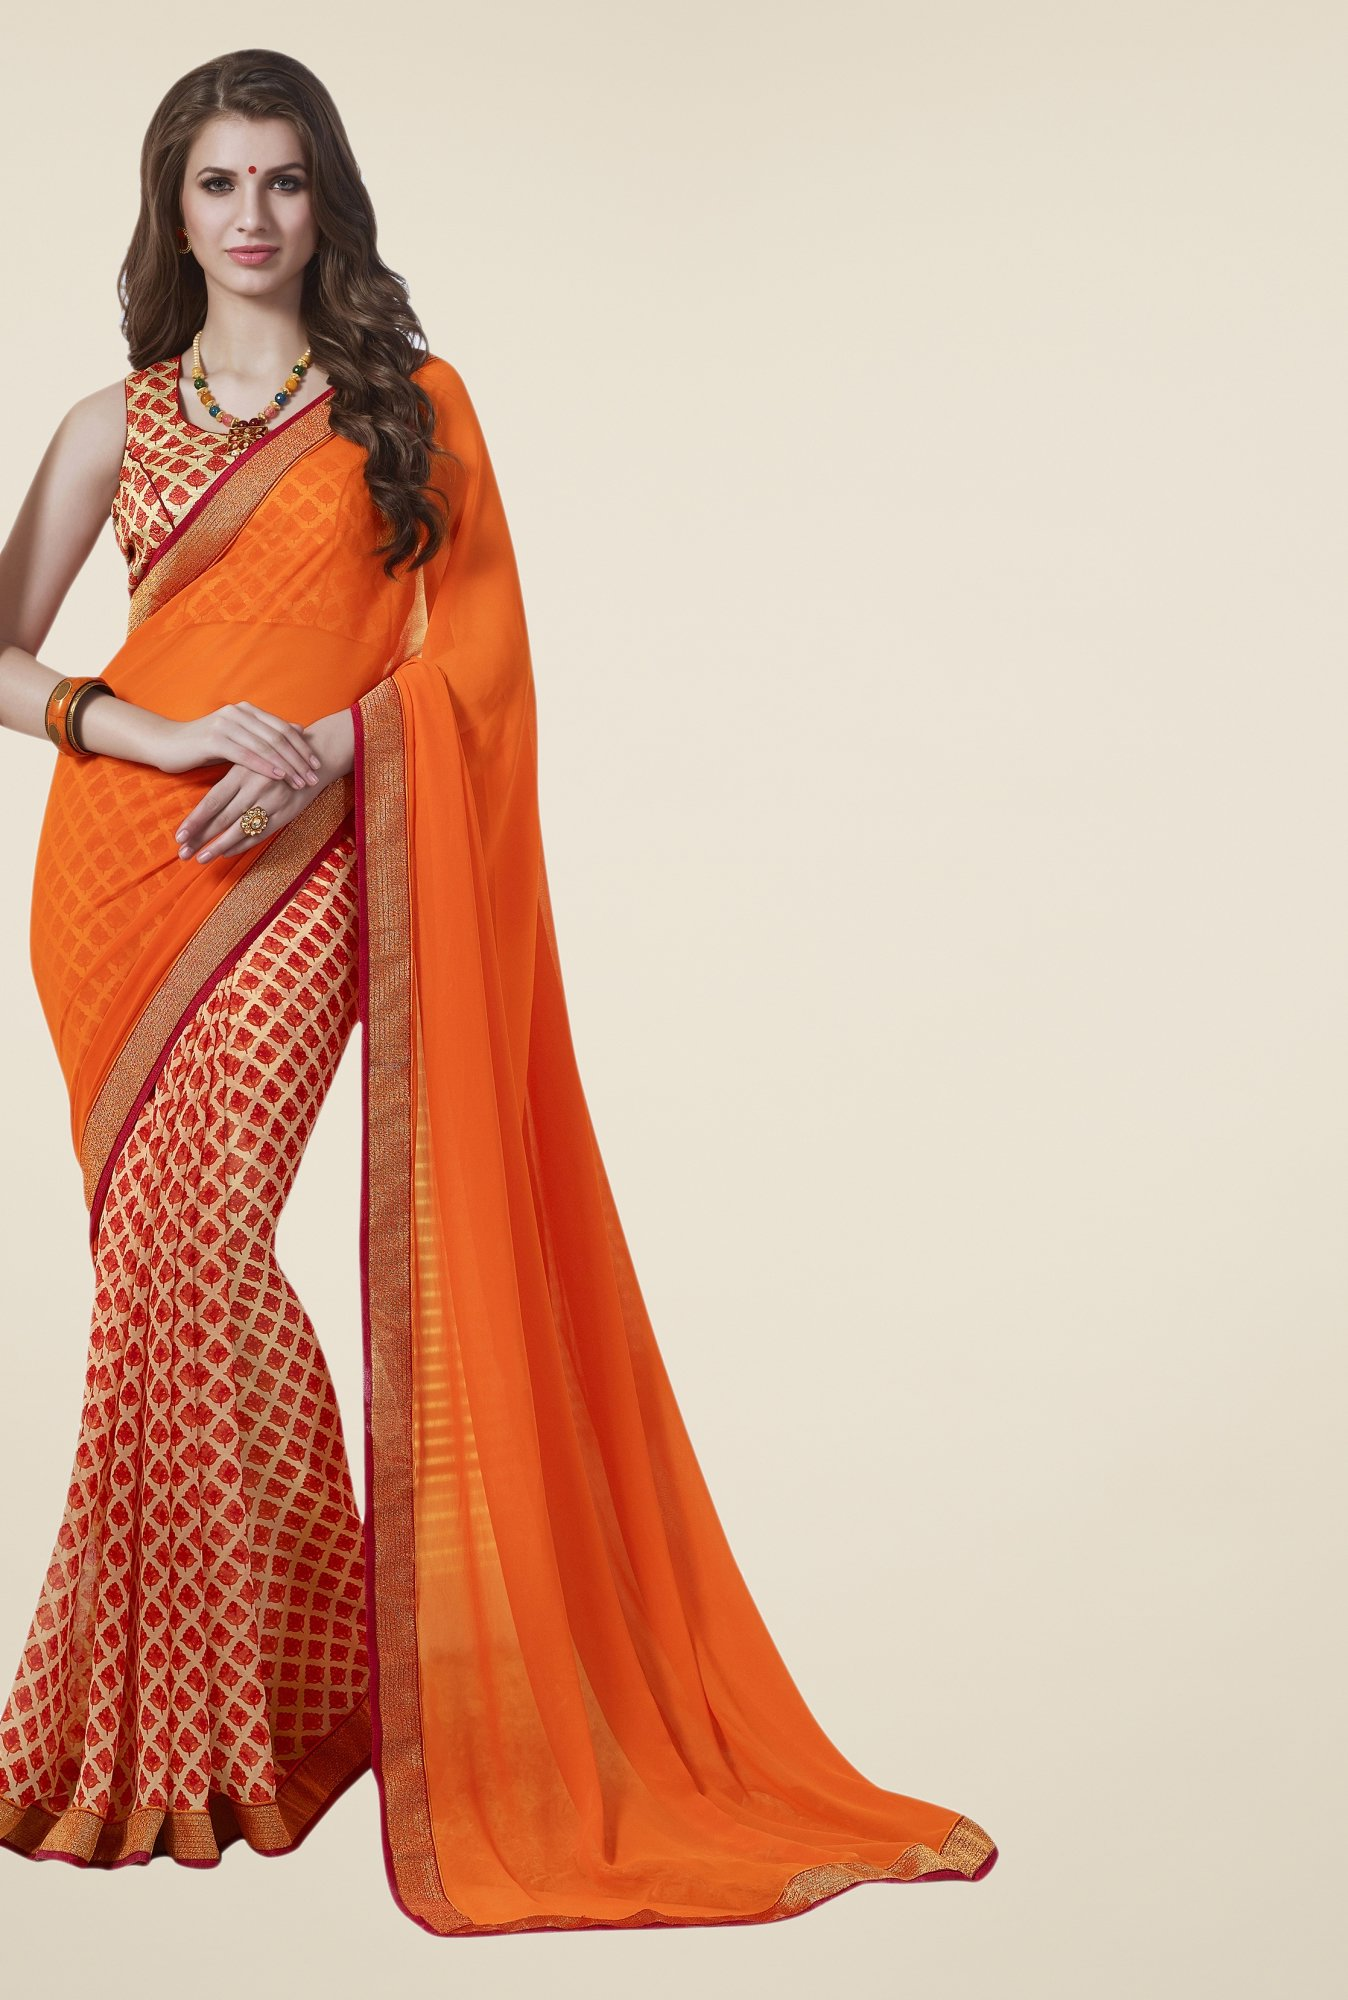 Triveni Red & Orange Printed Faux Georgette Saree